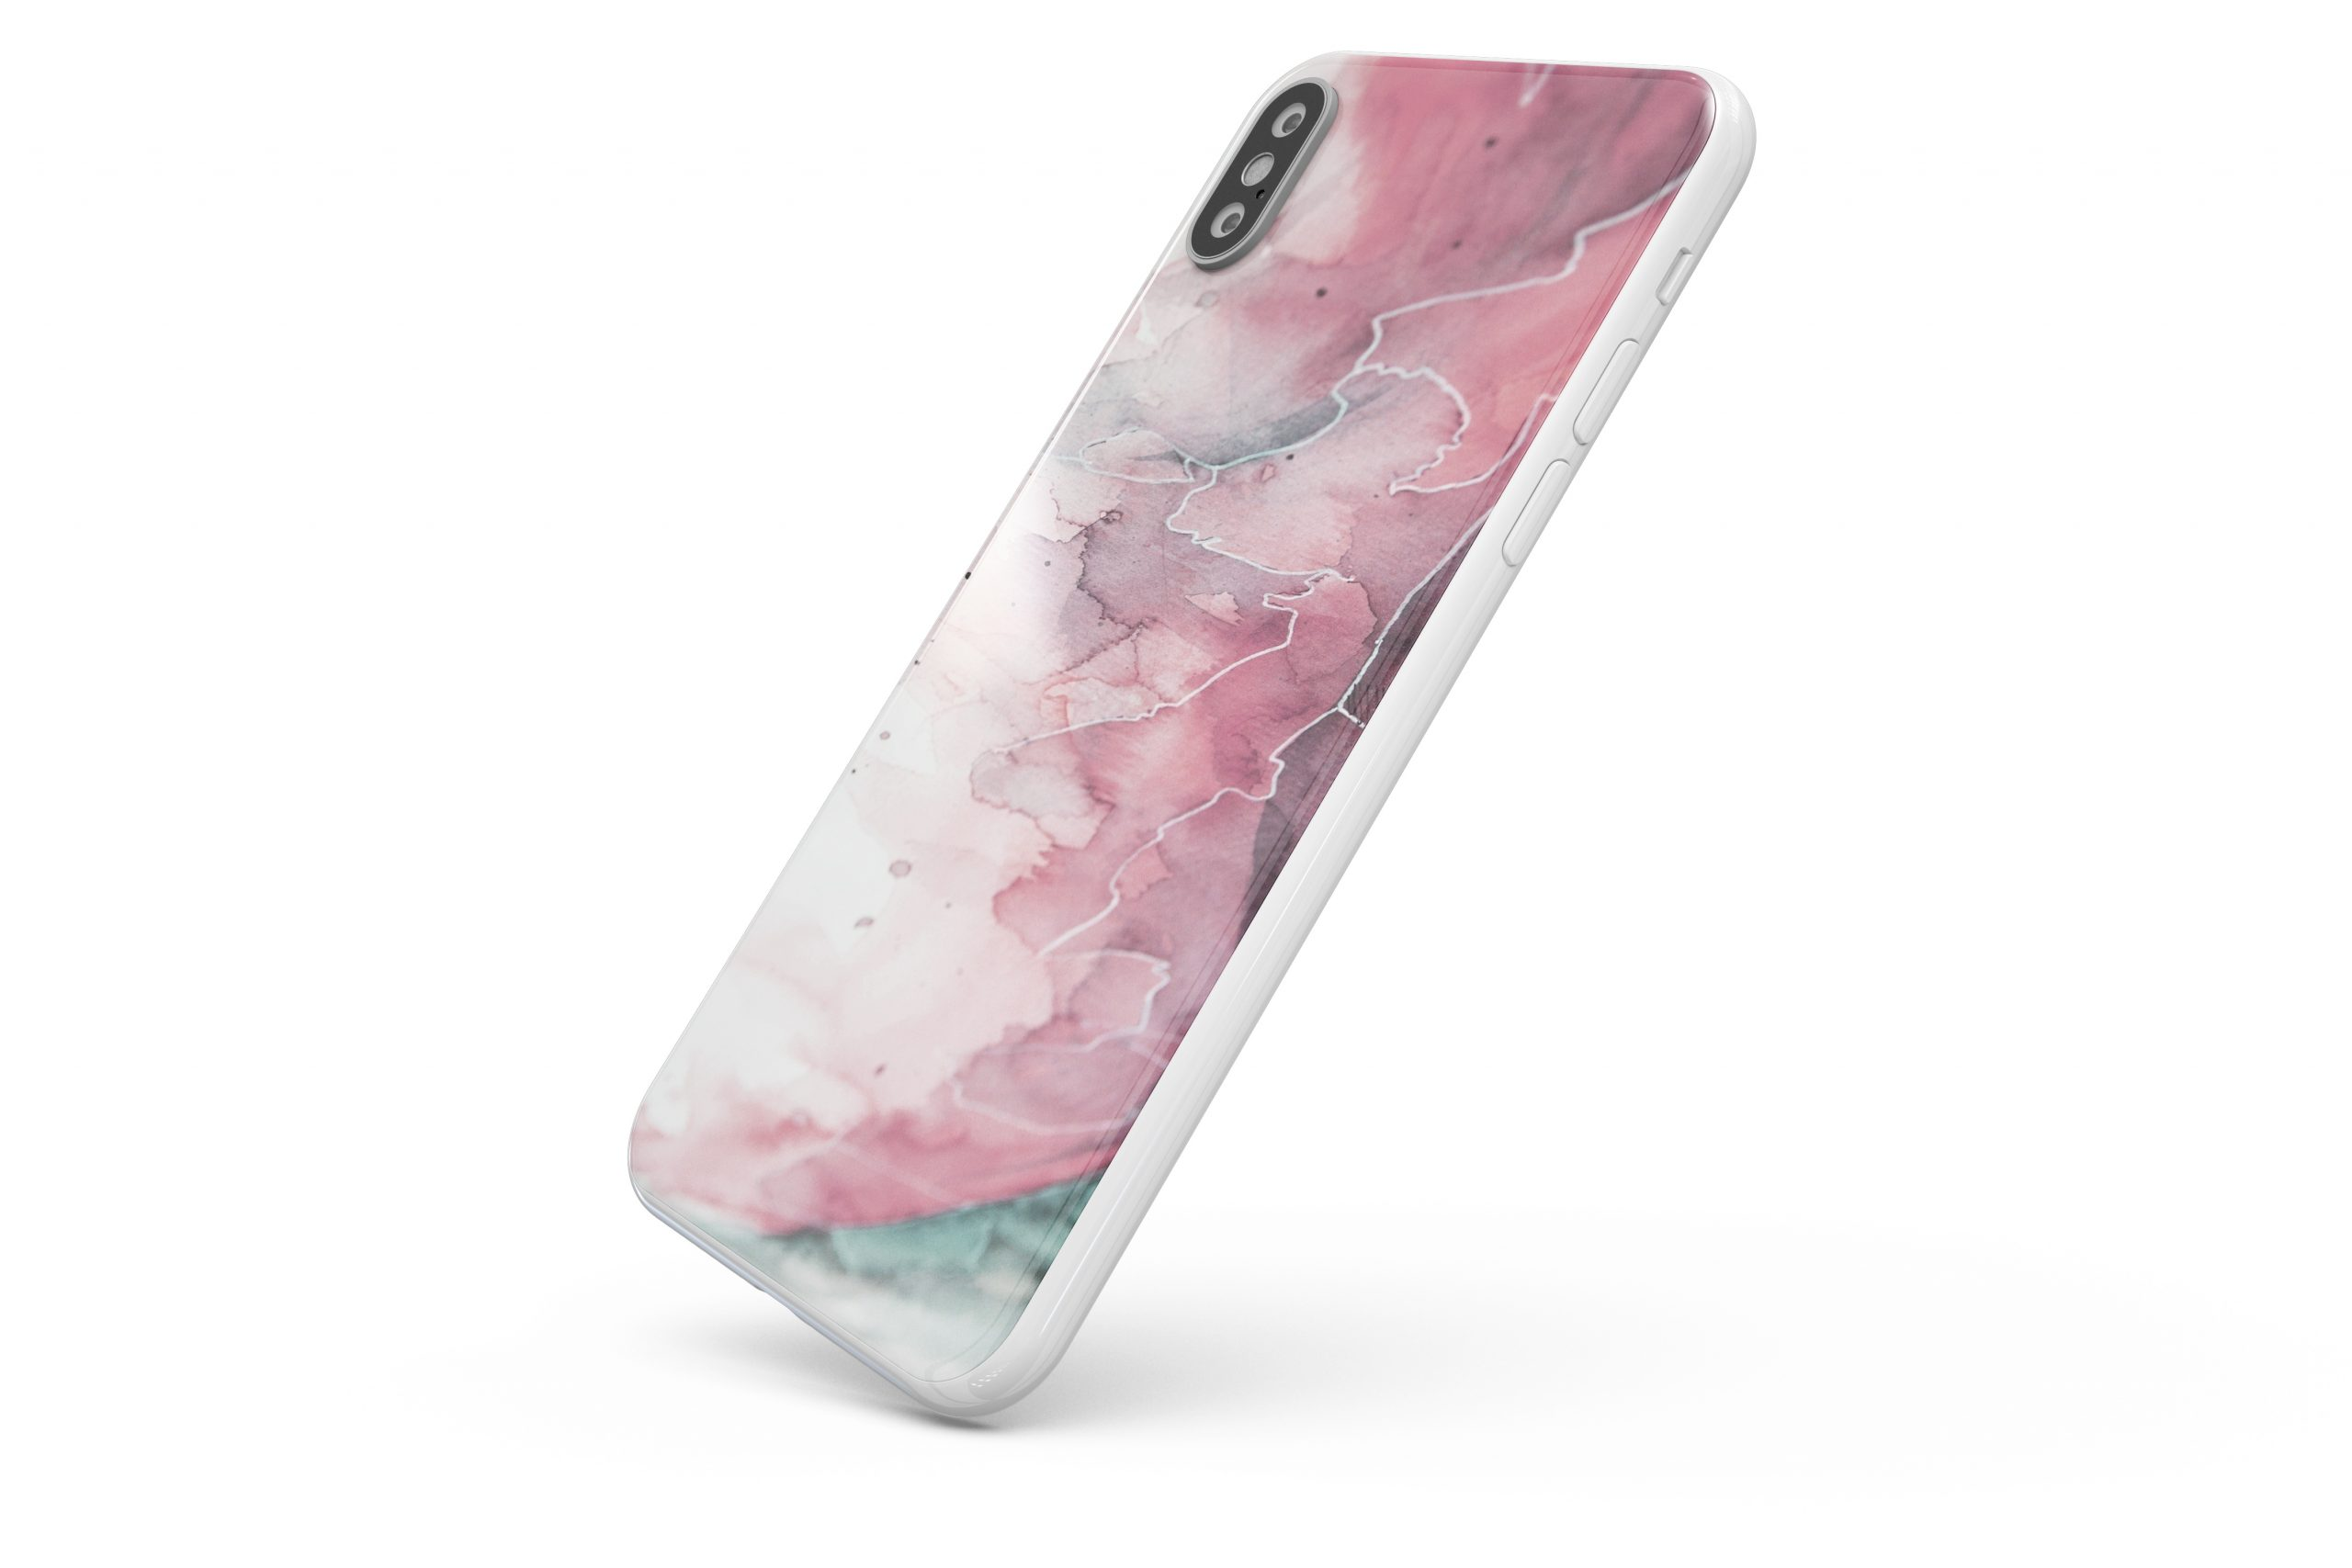 Best iPhone 10 Cases for Protection